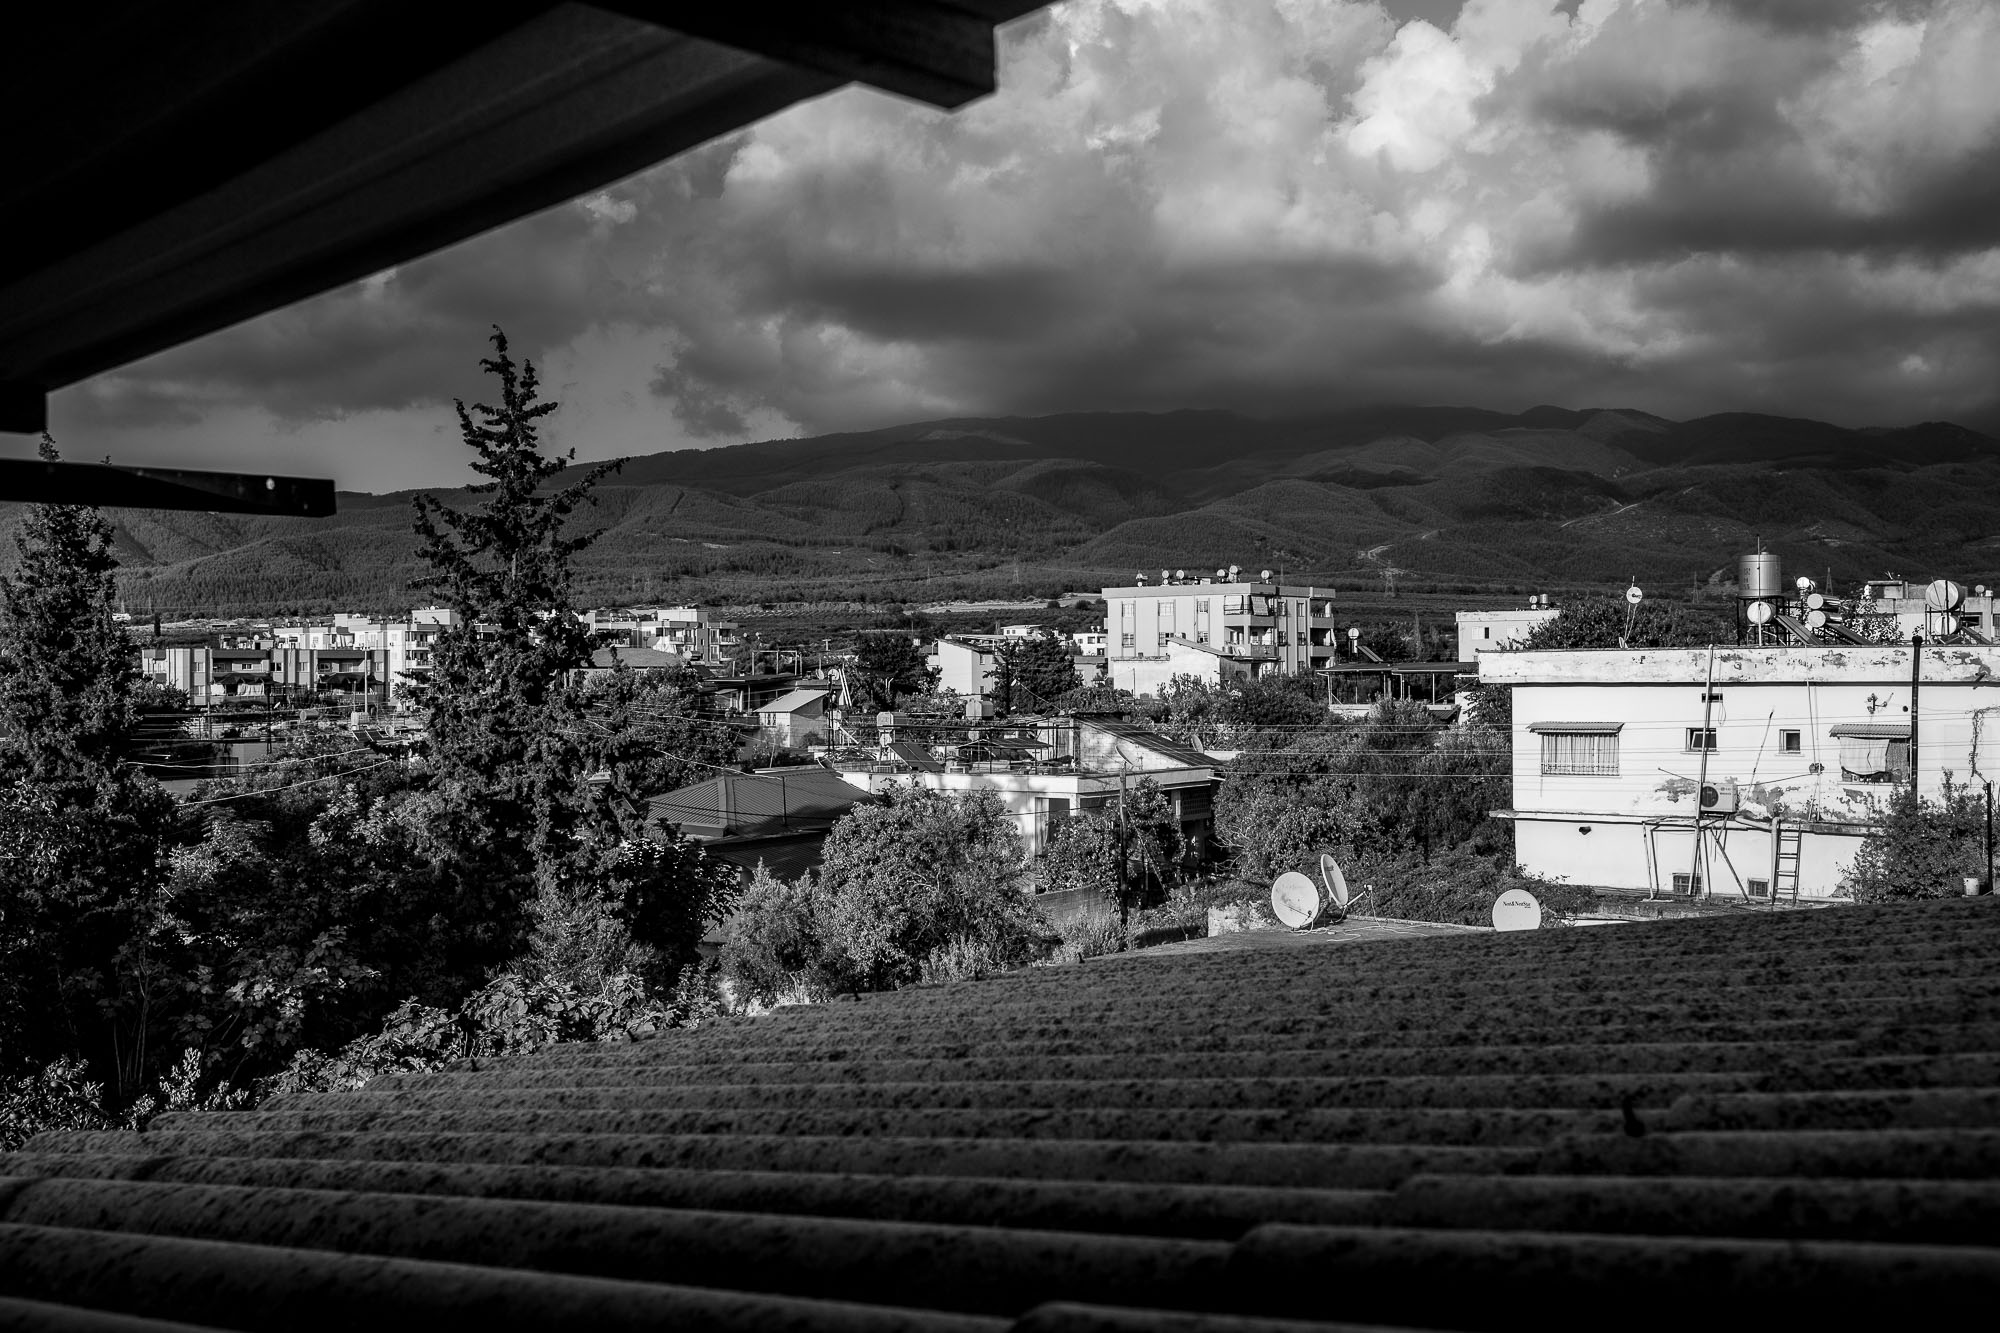 Houses, trees, mountains, seen from just under the roof